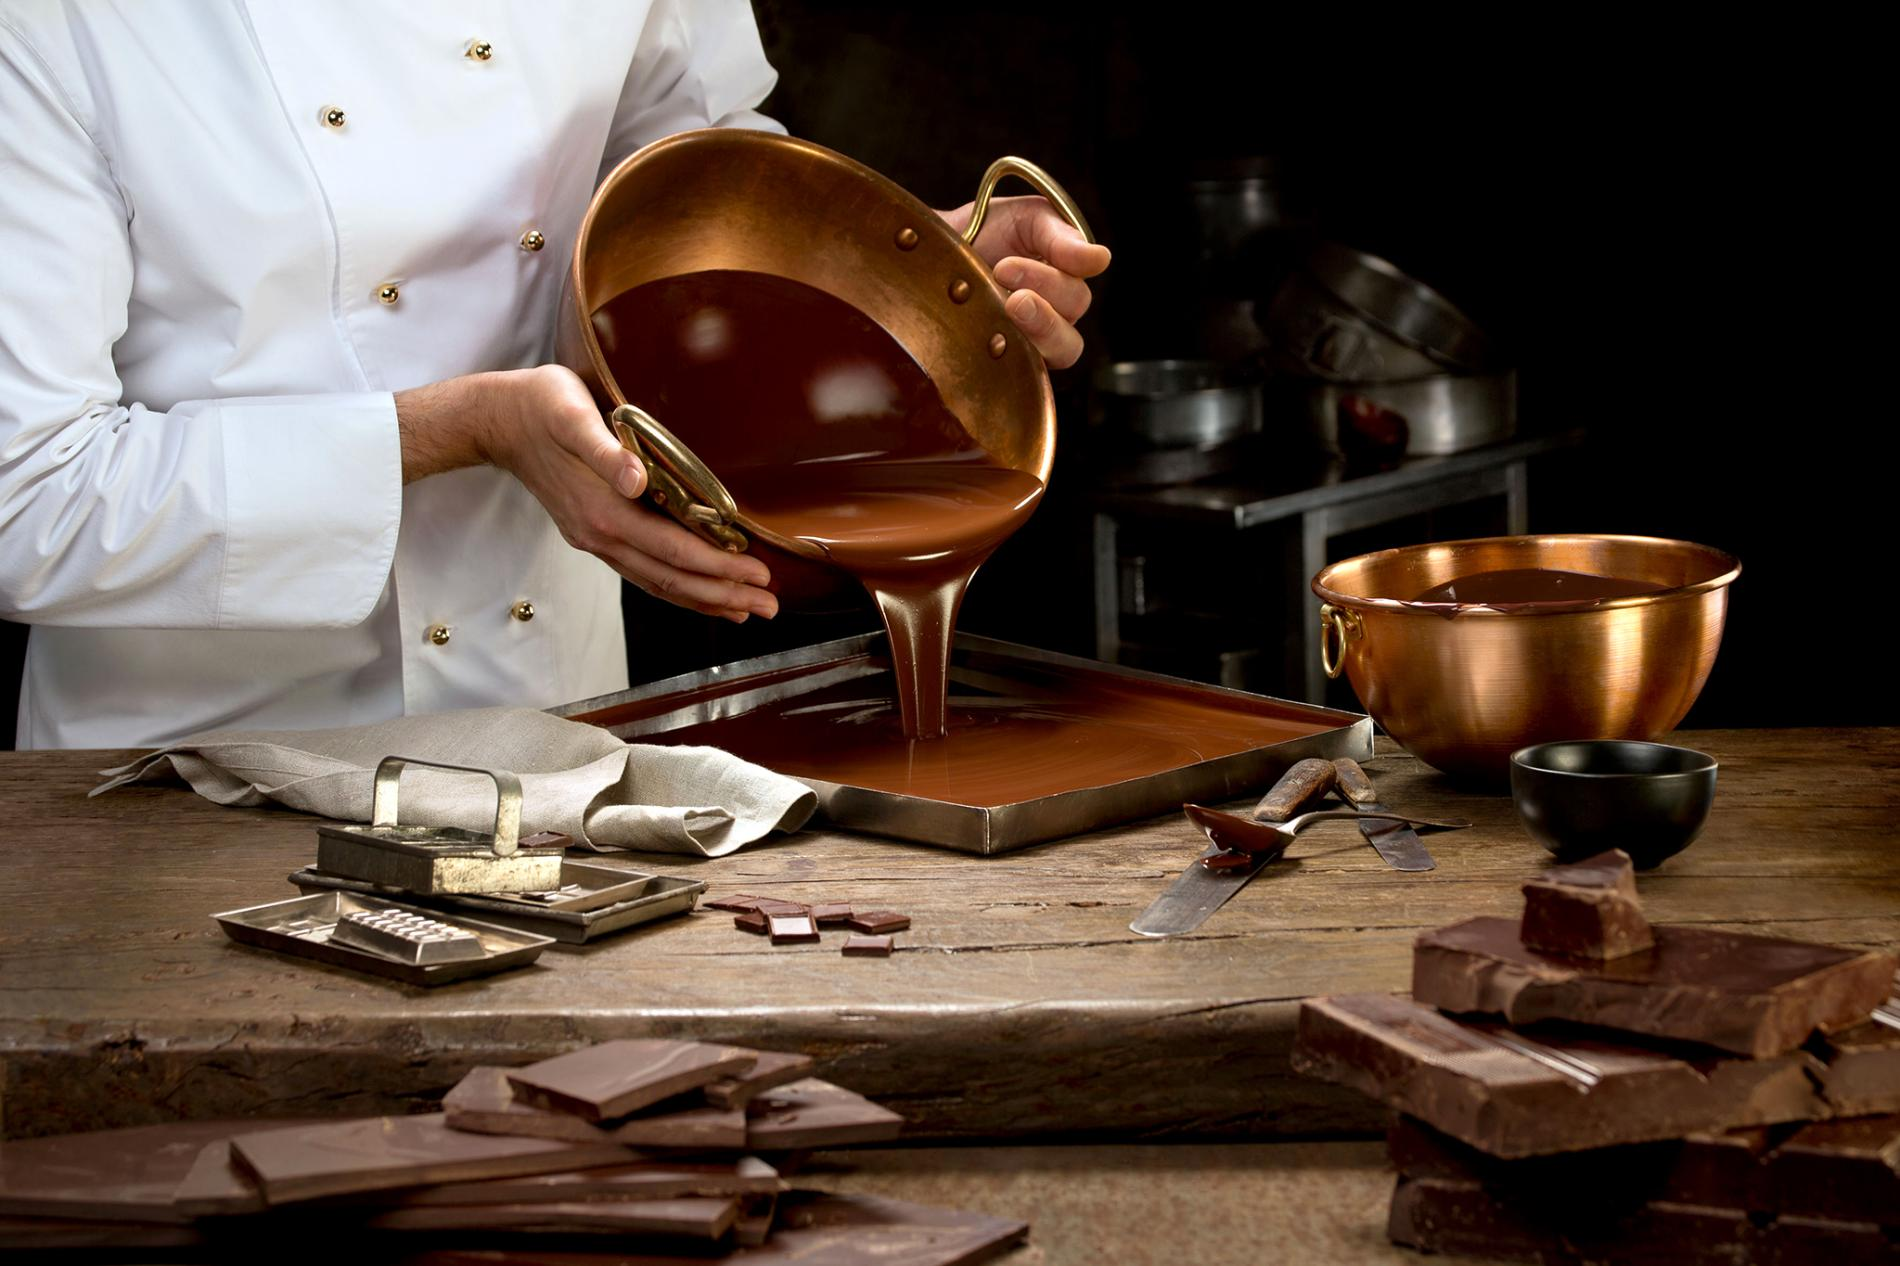 Switzerland chocolate making experience - best places to visit in Switzerland